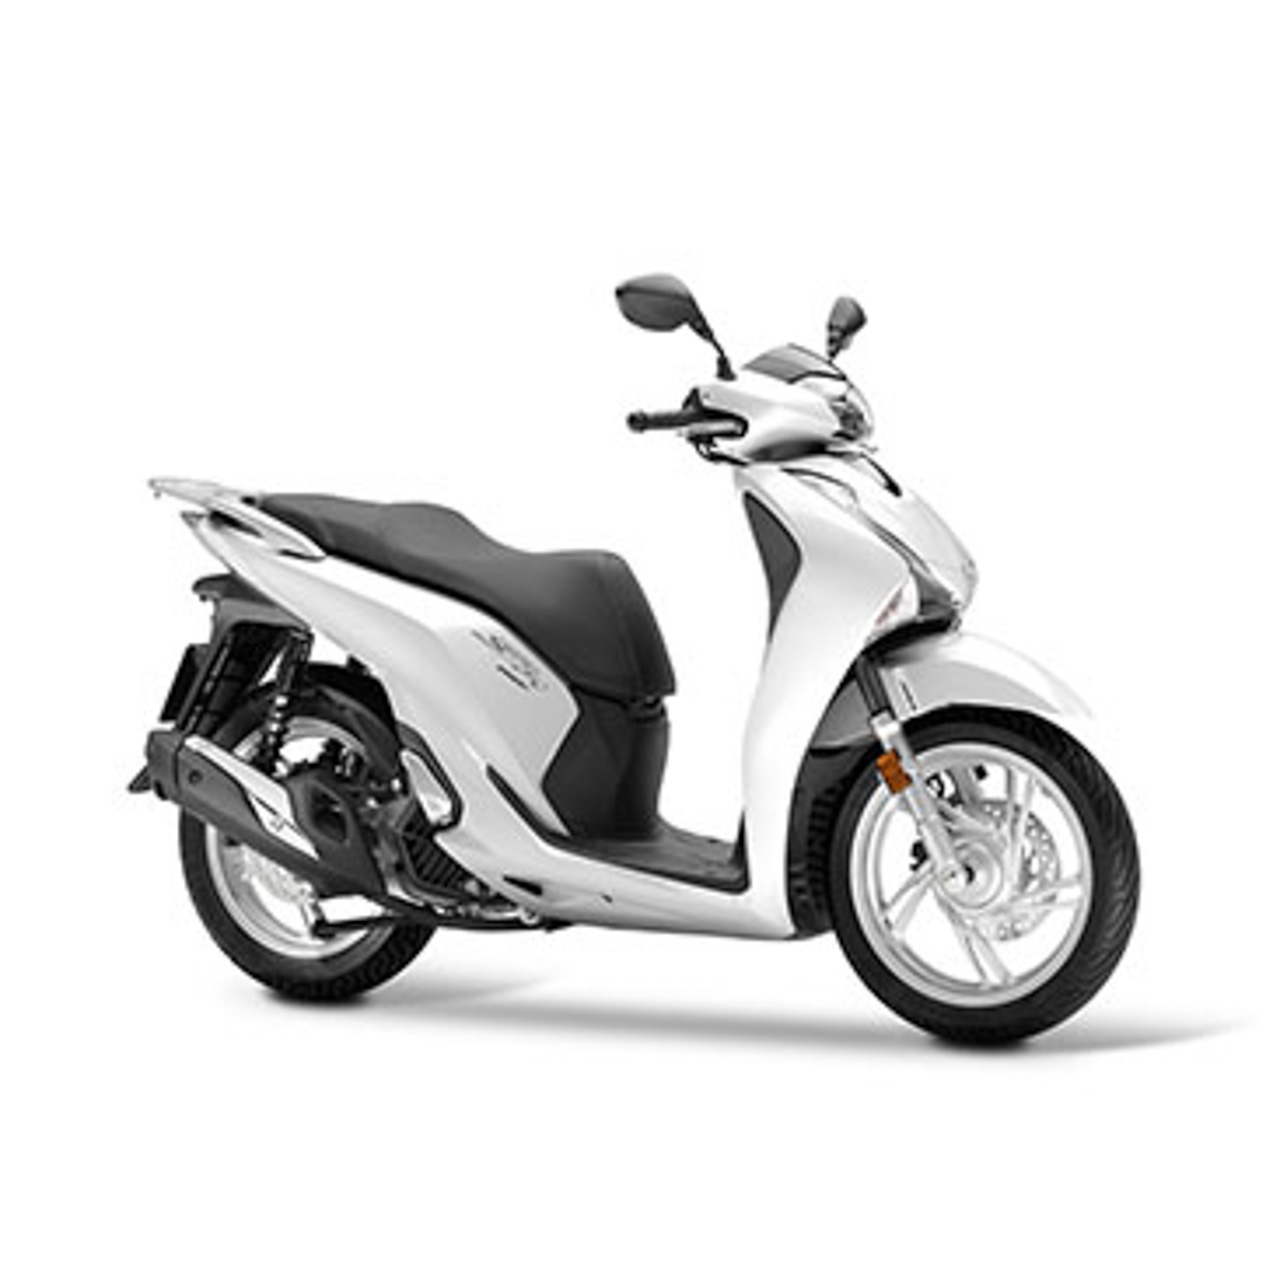 Honda SH150 scooter for rent in Sydney from Scootering with a low weekly payment